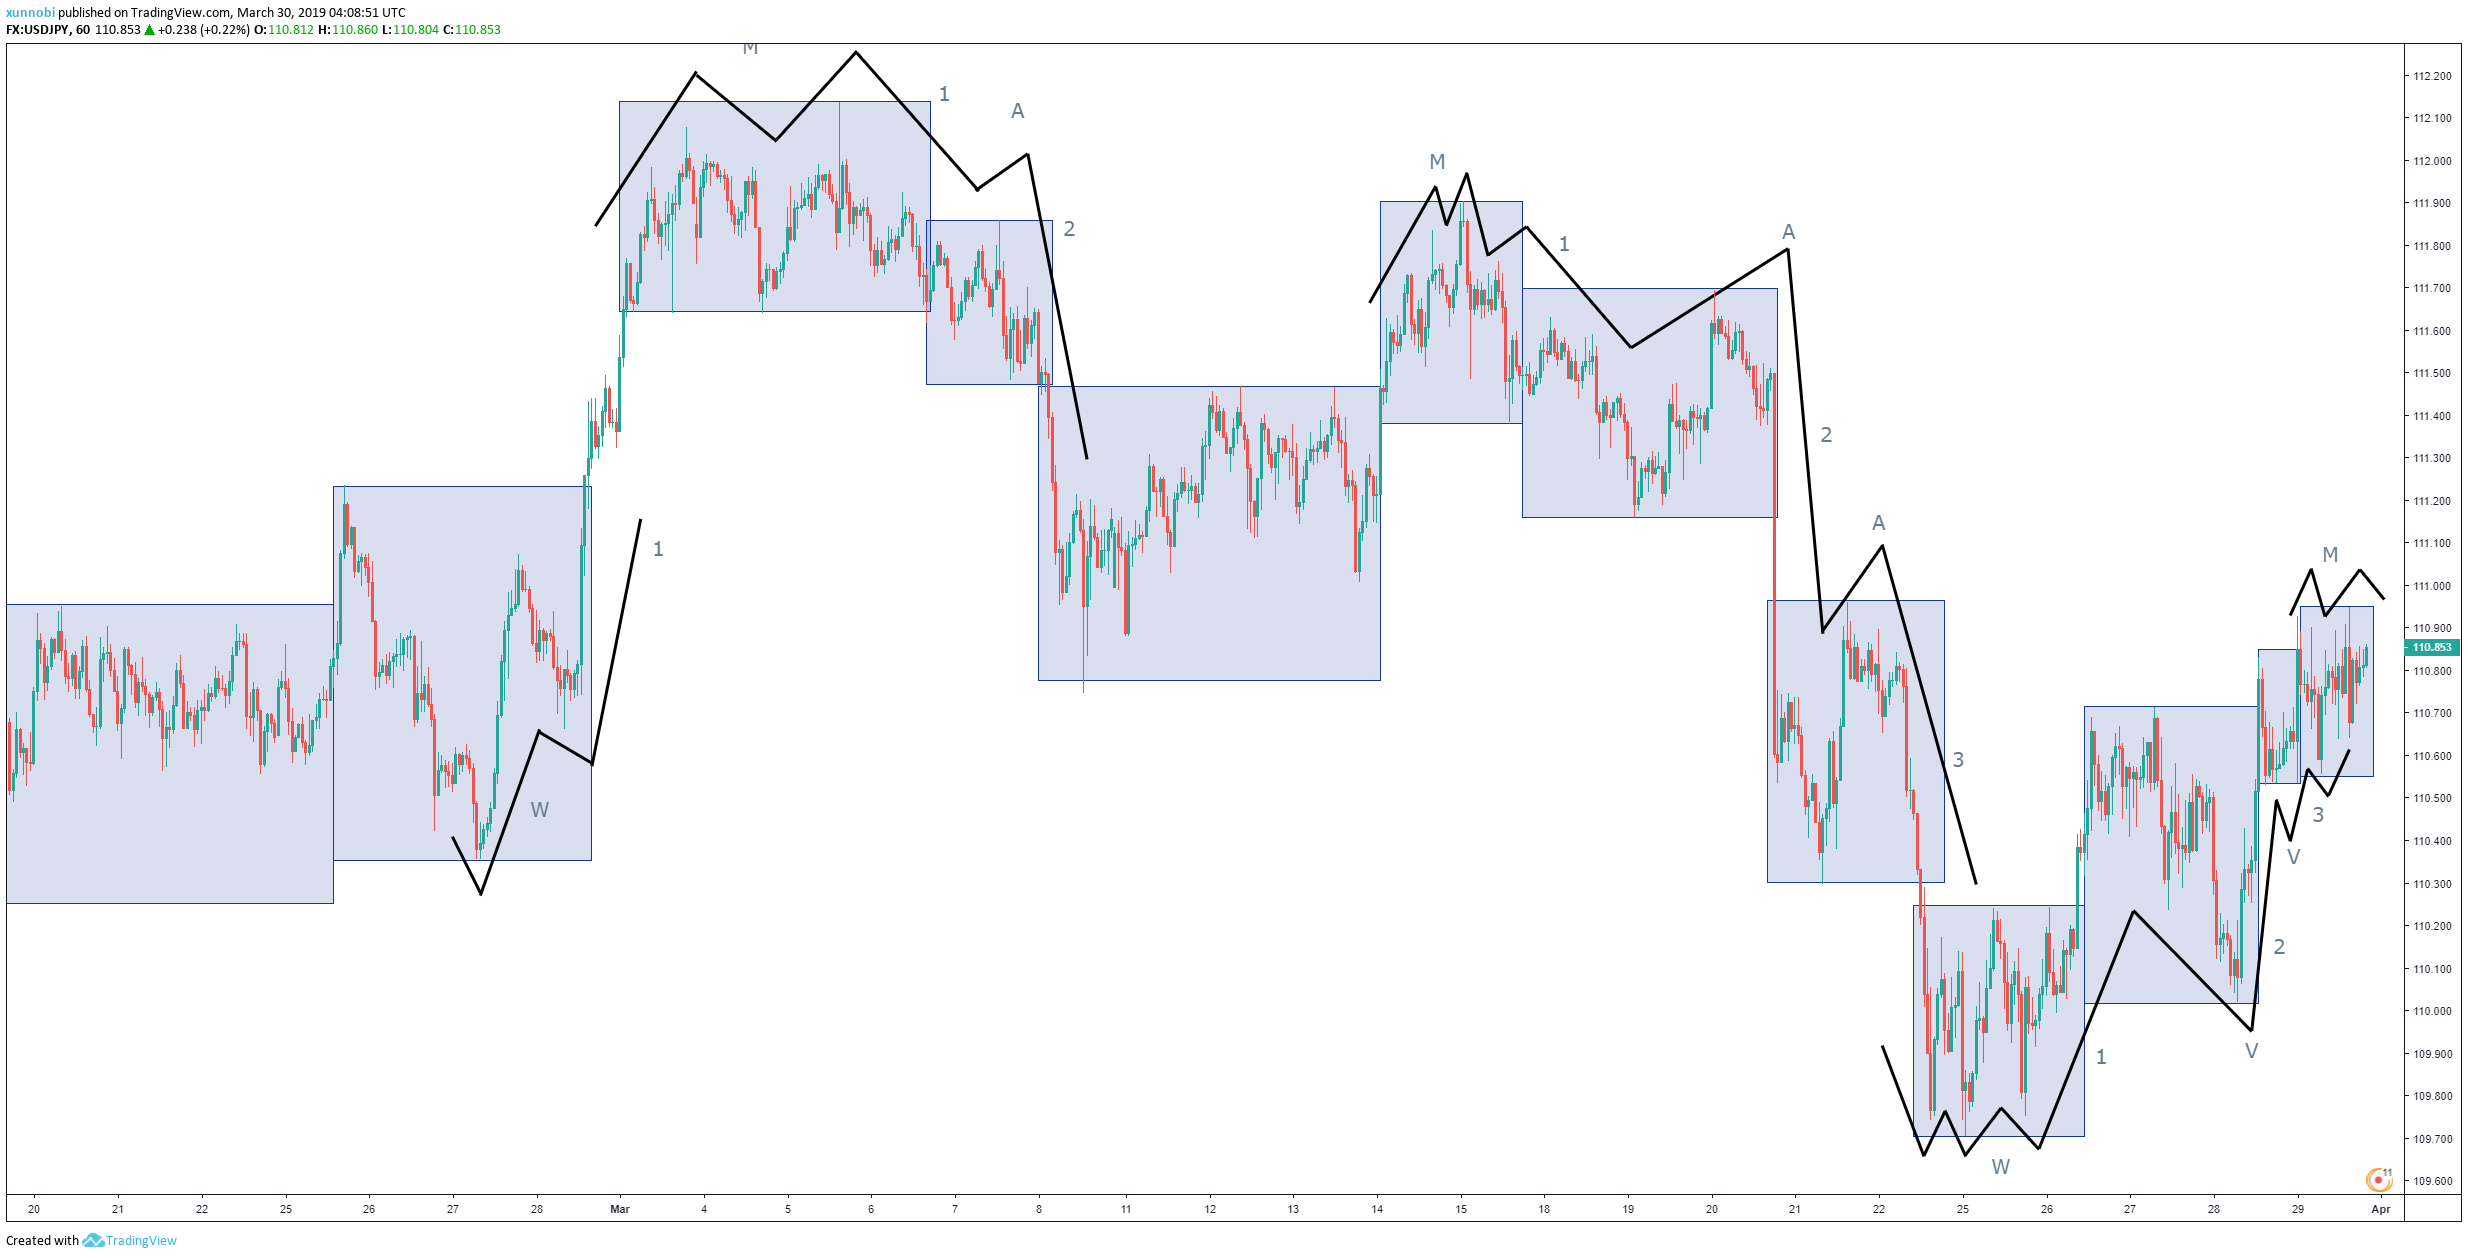 My Tradingview analysis posted in Tradingview.com - Click  HERE  to access the analysis